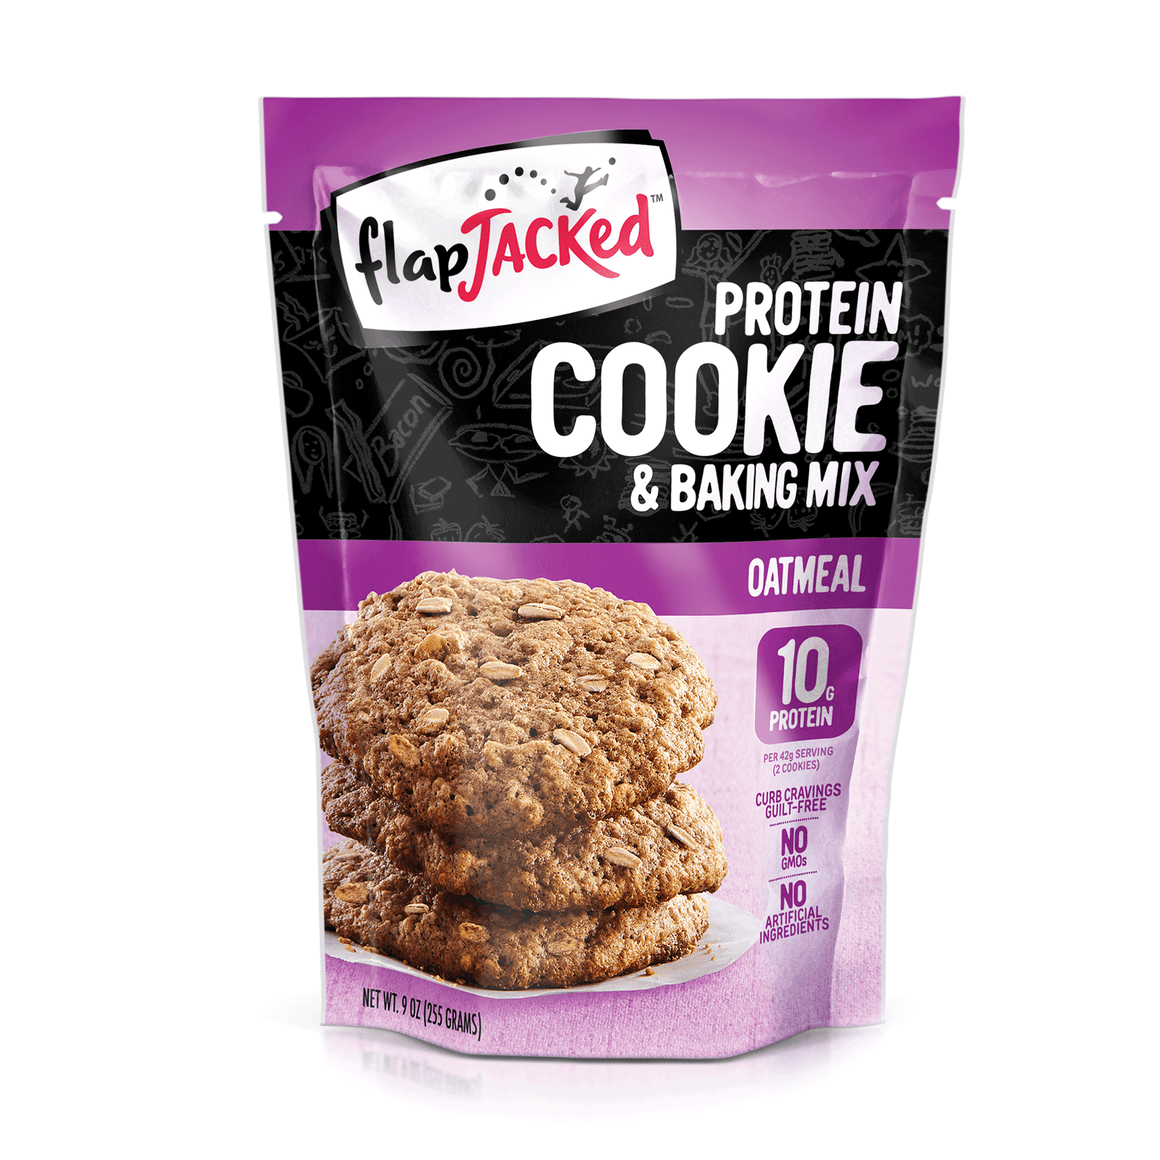 Oatmeal Protein Cookie & Baking Mix